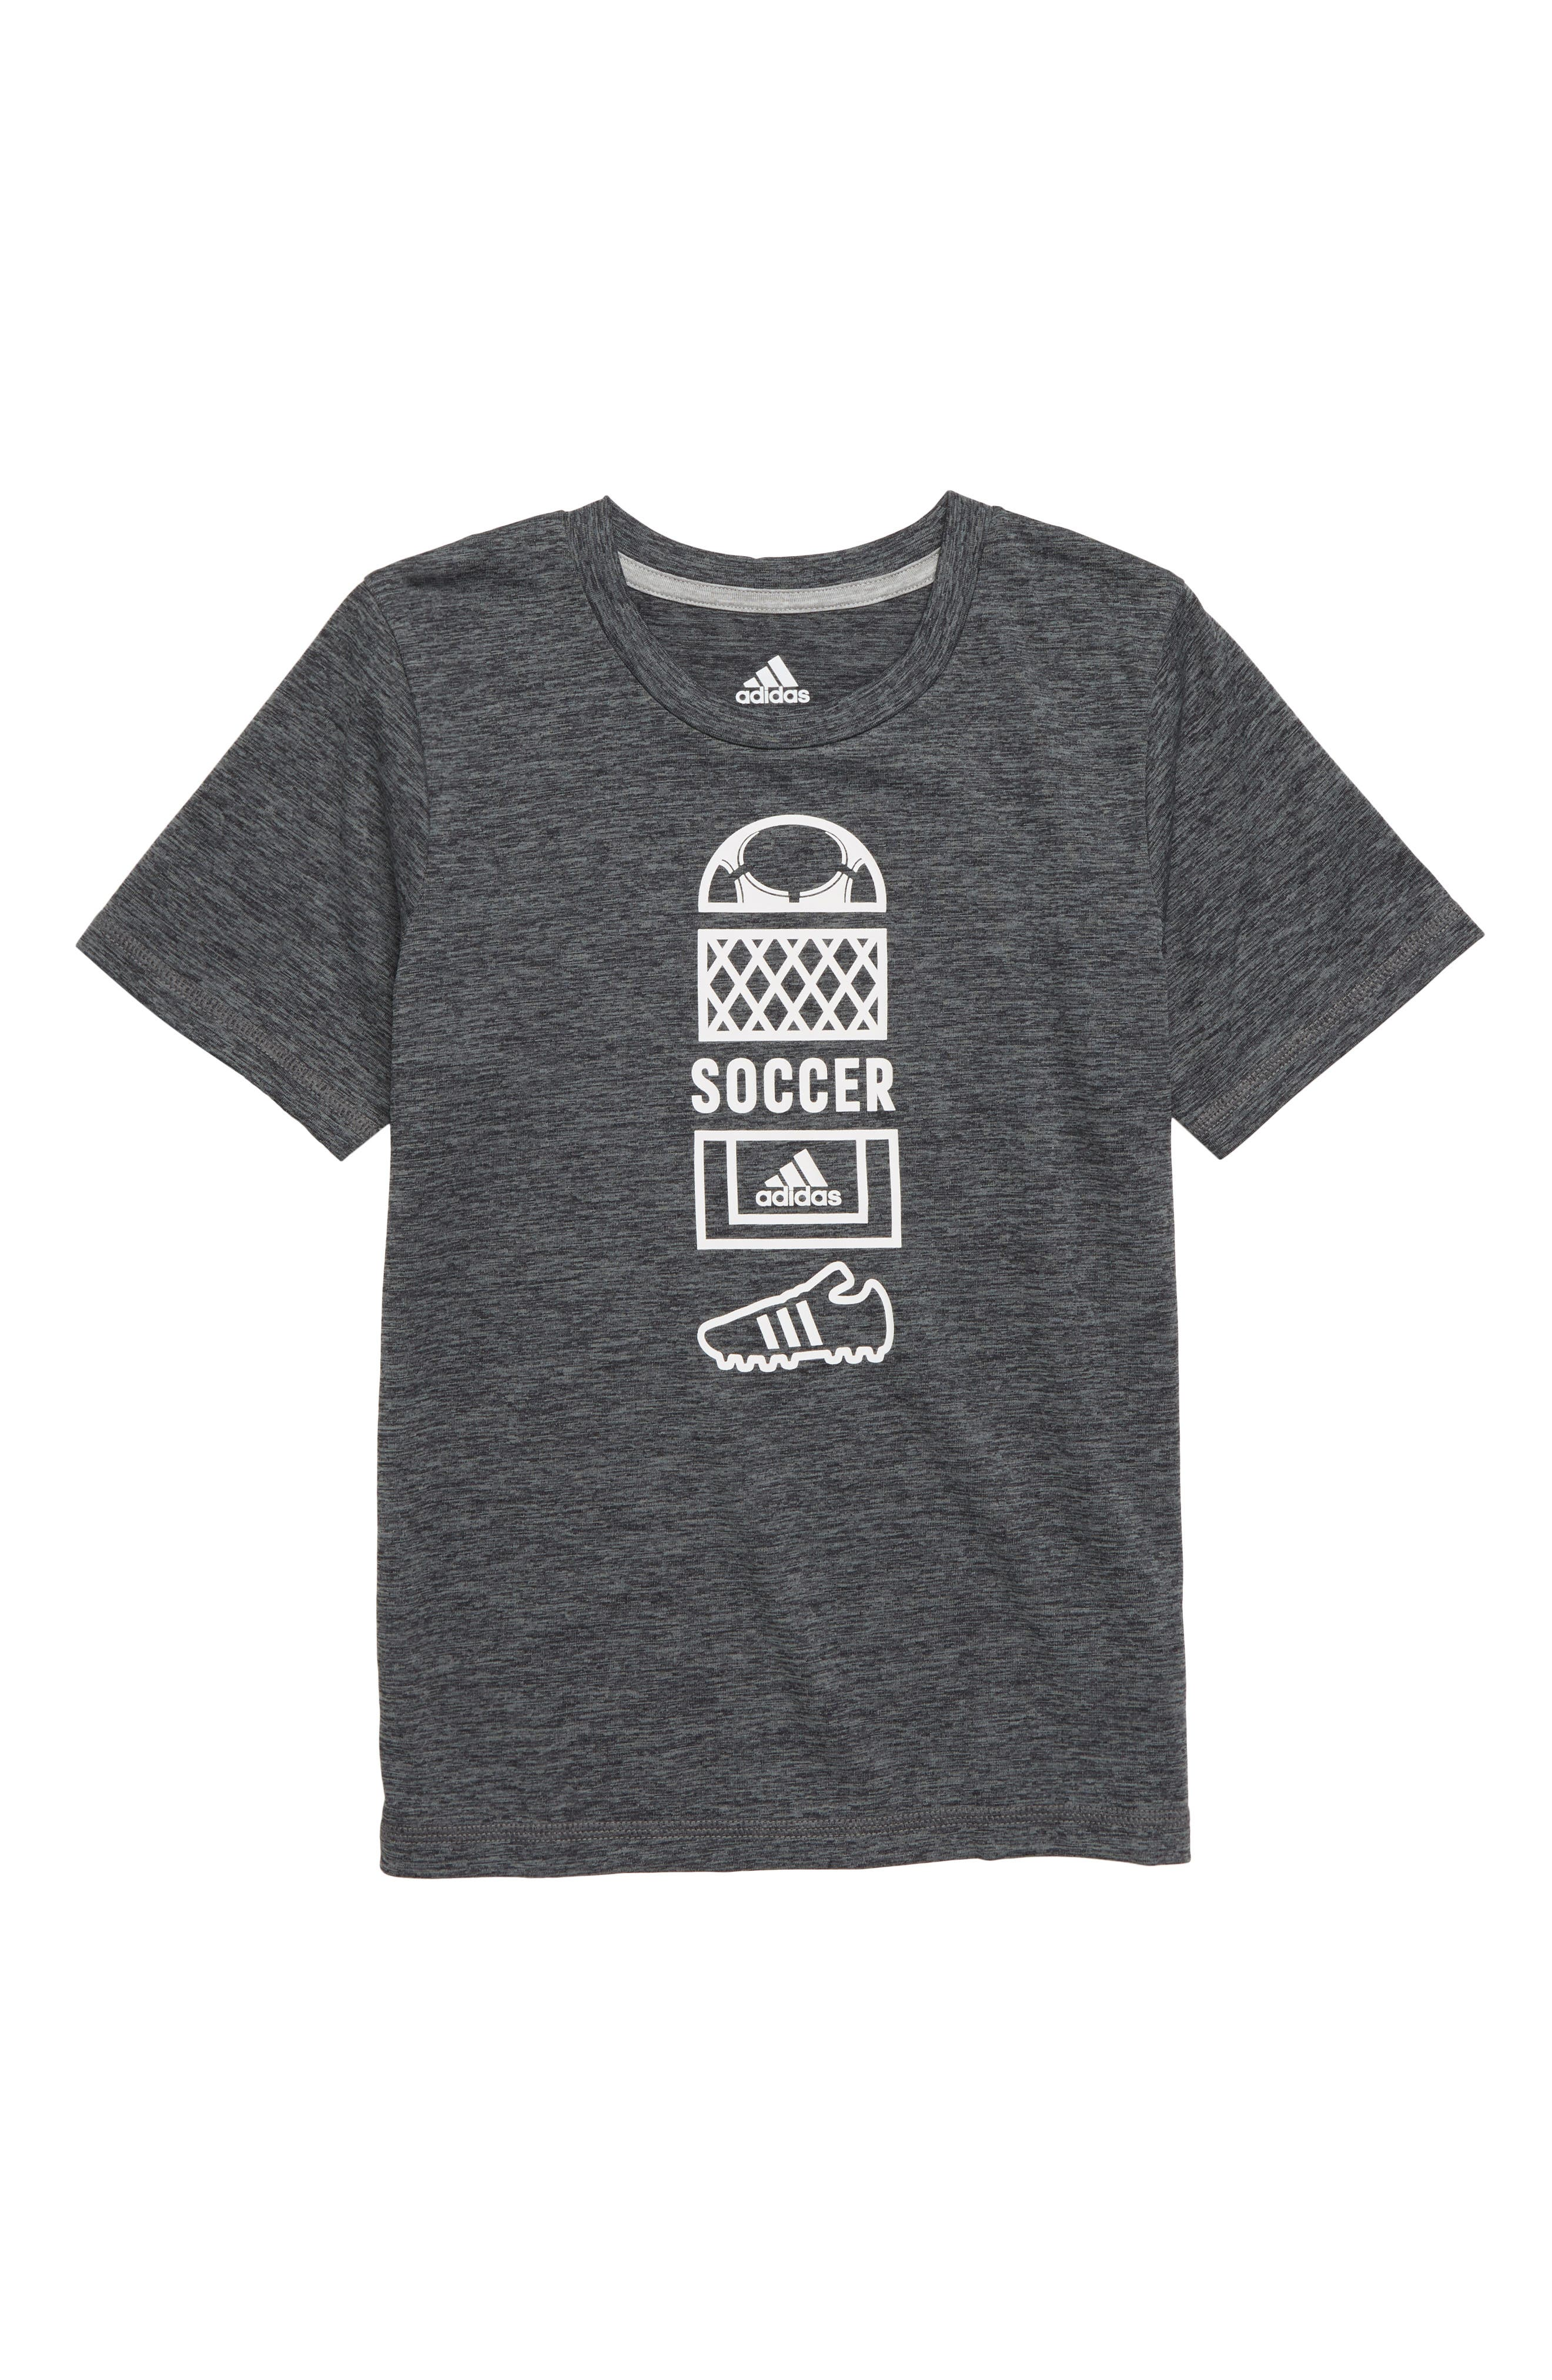 Soccer Vertical Collage Graphic T-Shirt,                             Main thumbnail 1, color,                             DARK GREY